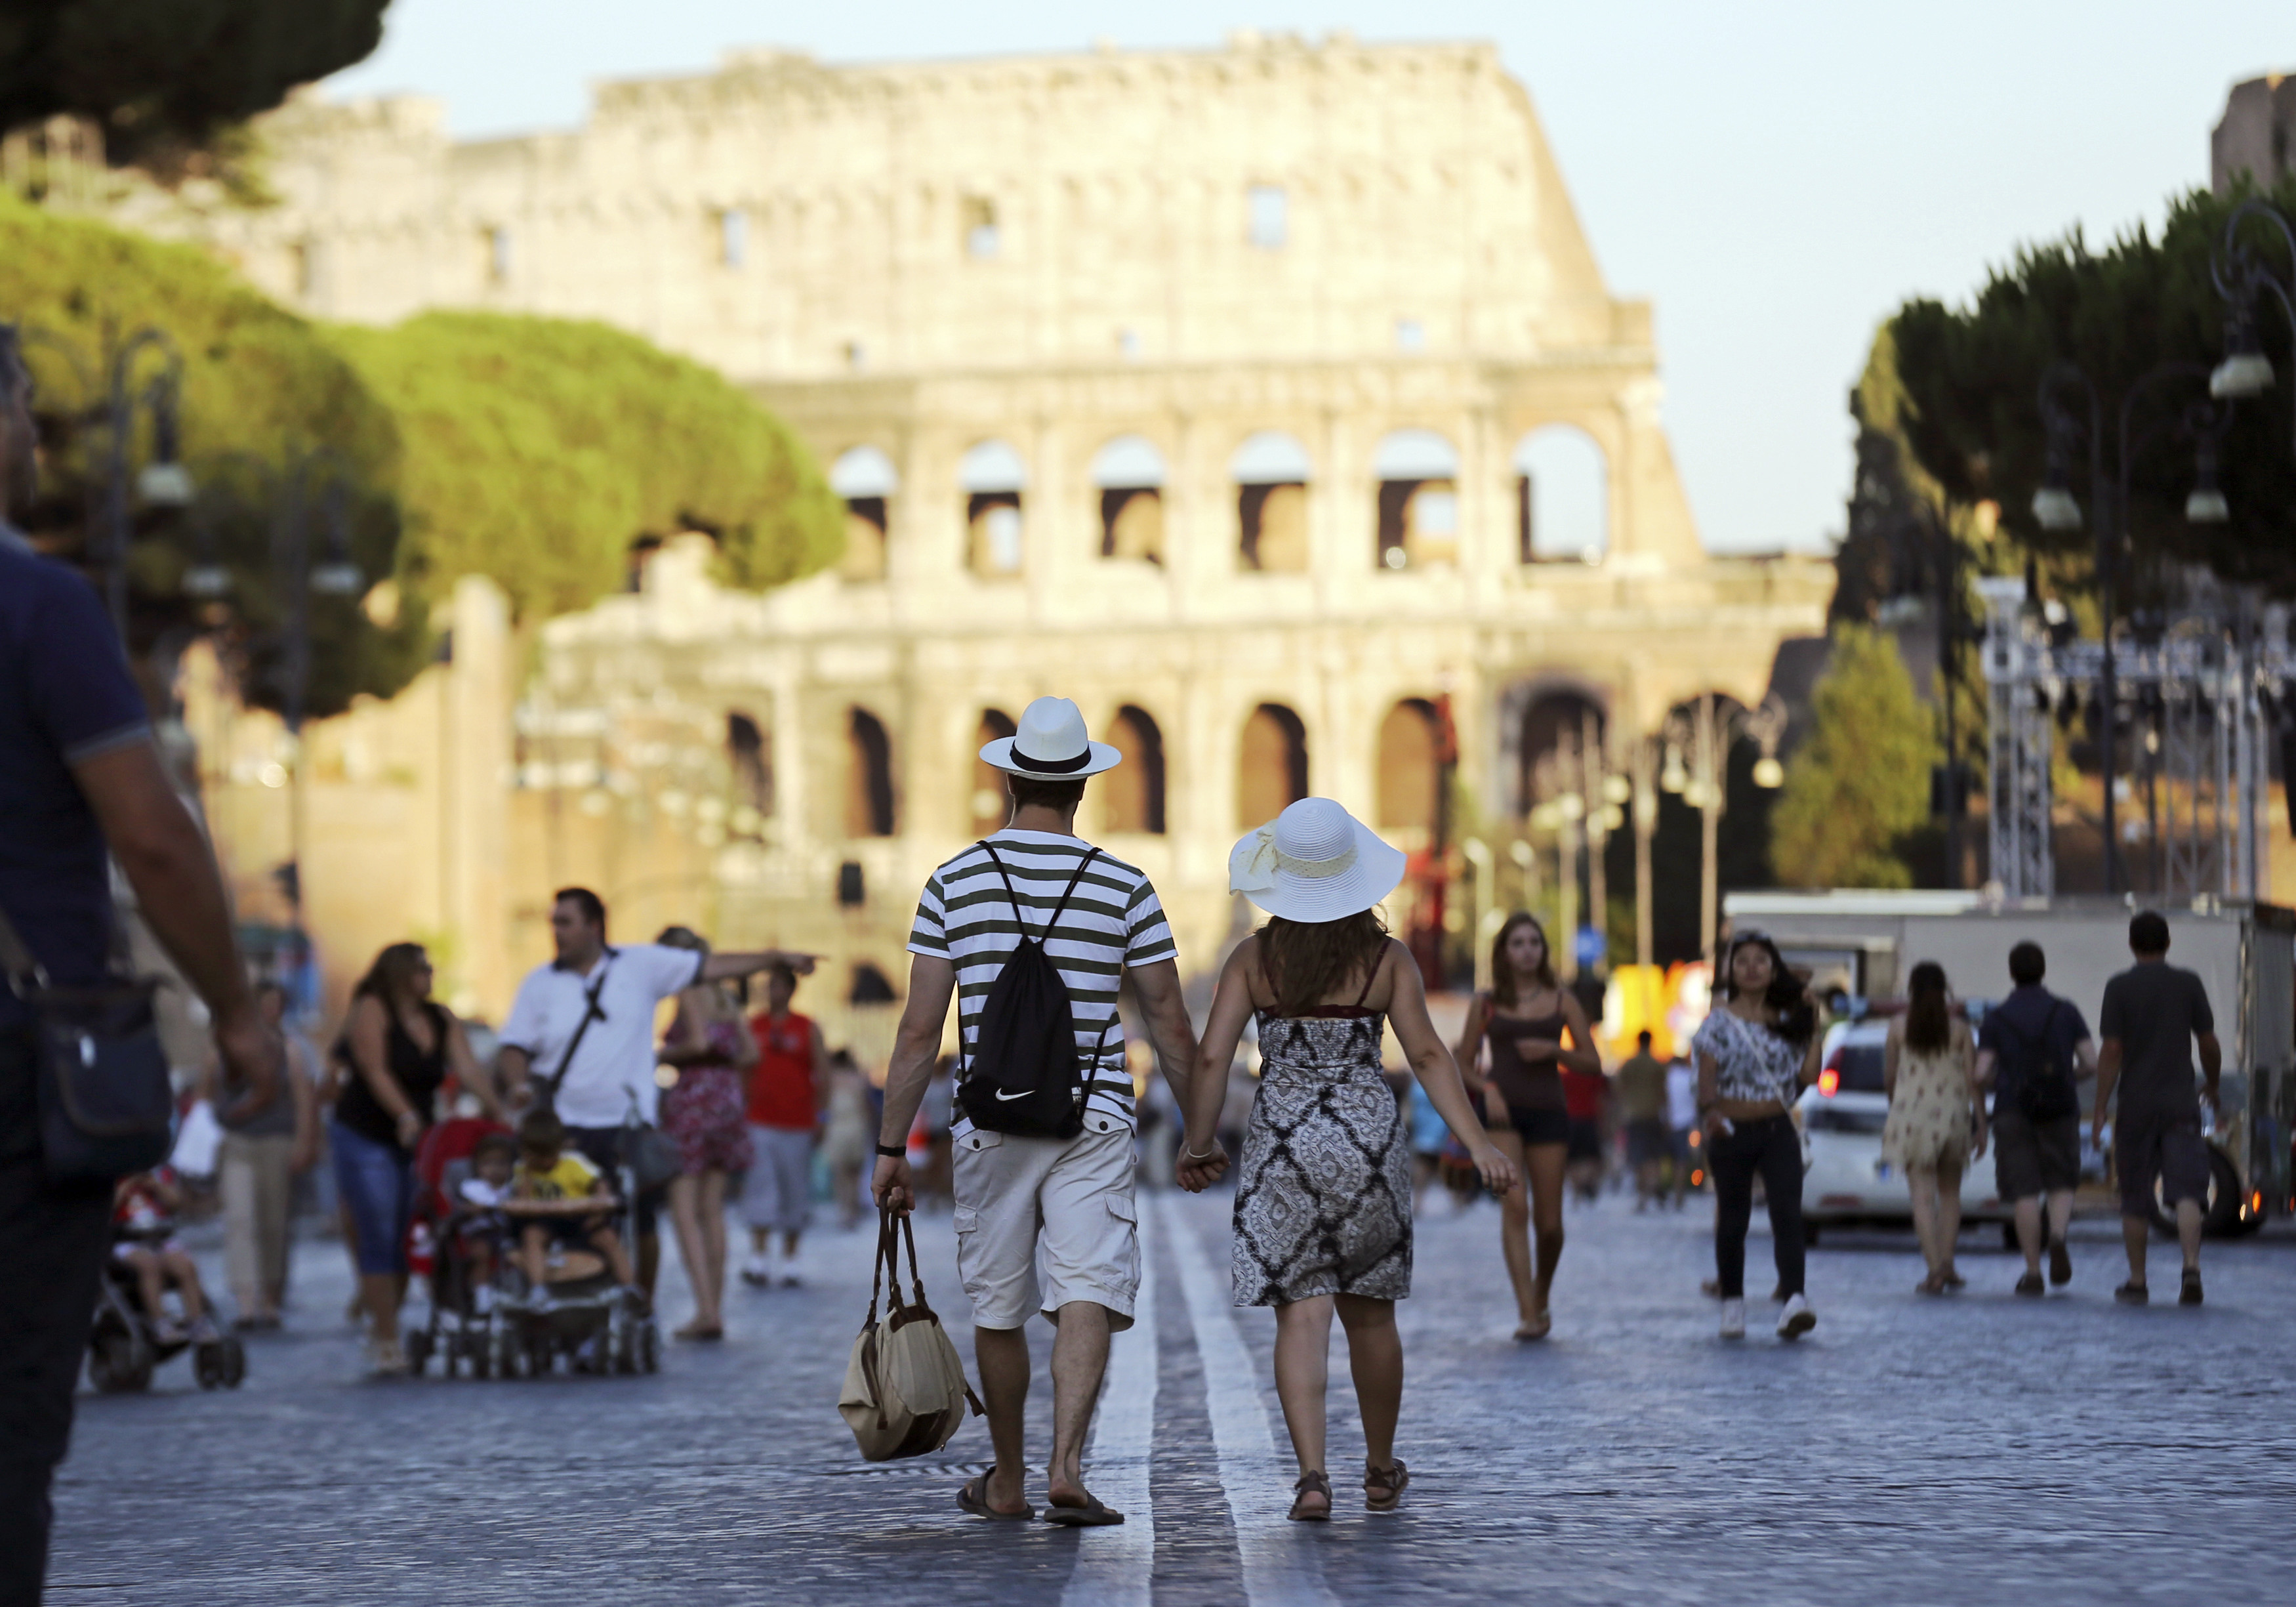 People walk at the Fori Imperiali street with Rome's famous colosseum in the background.